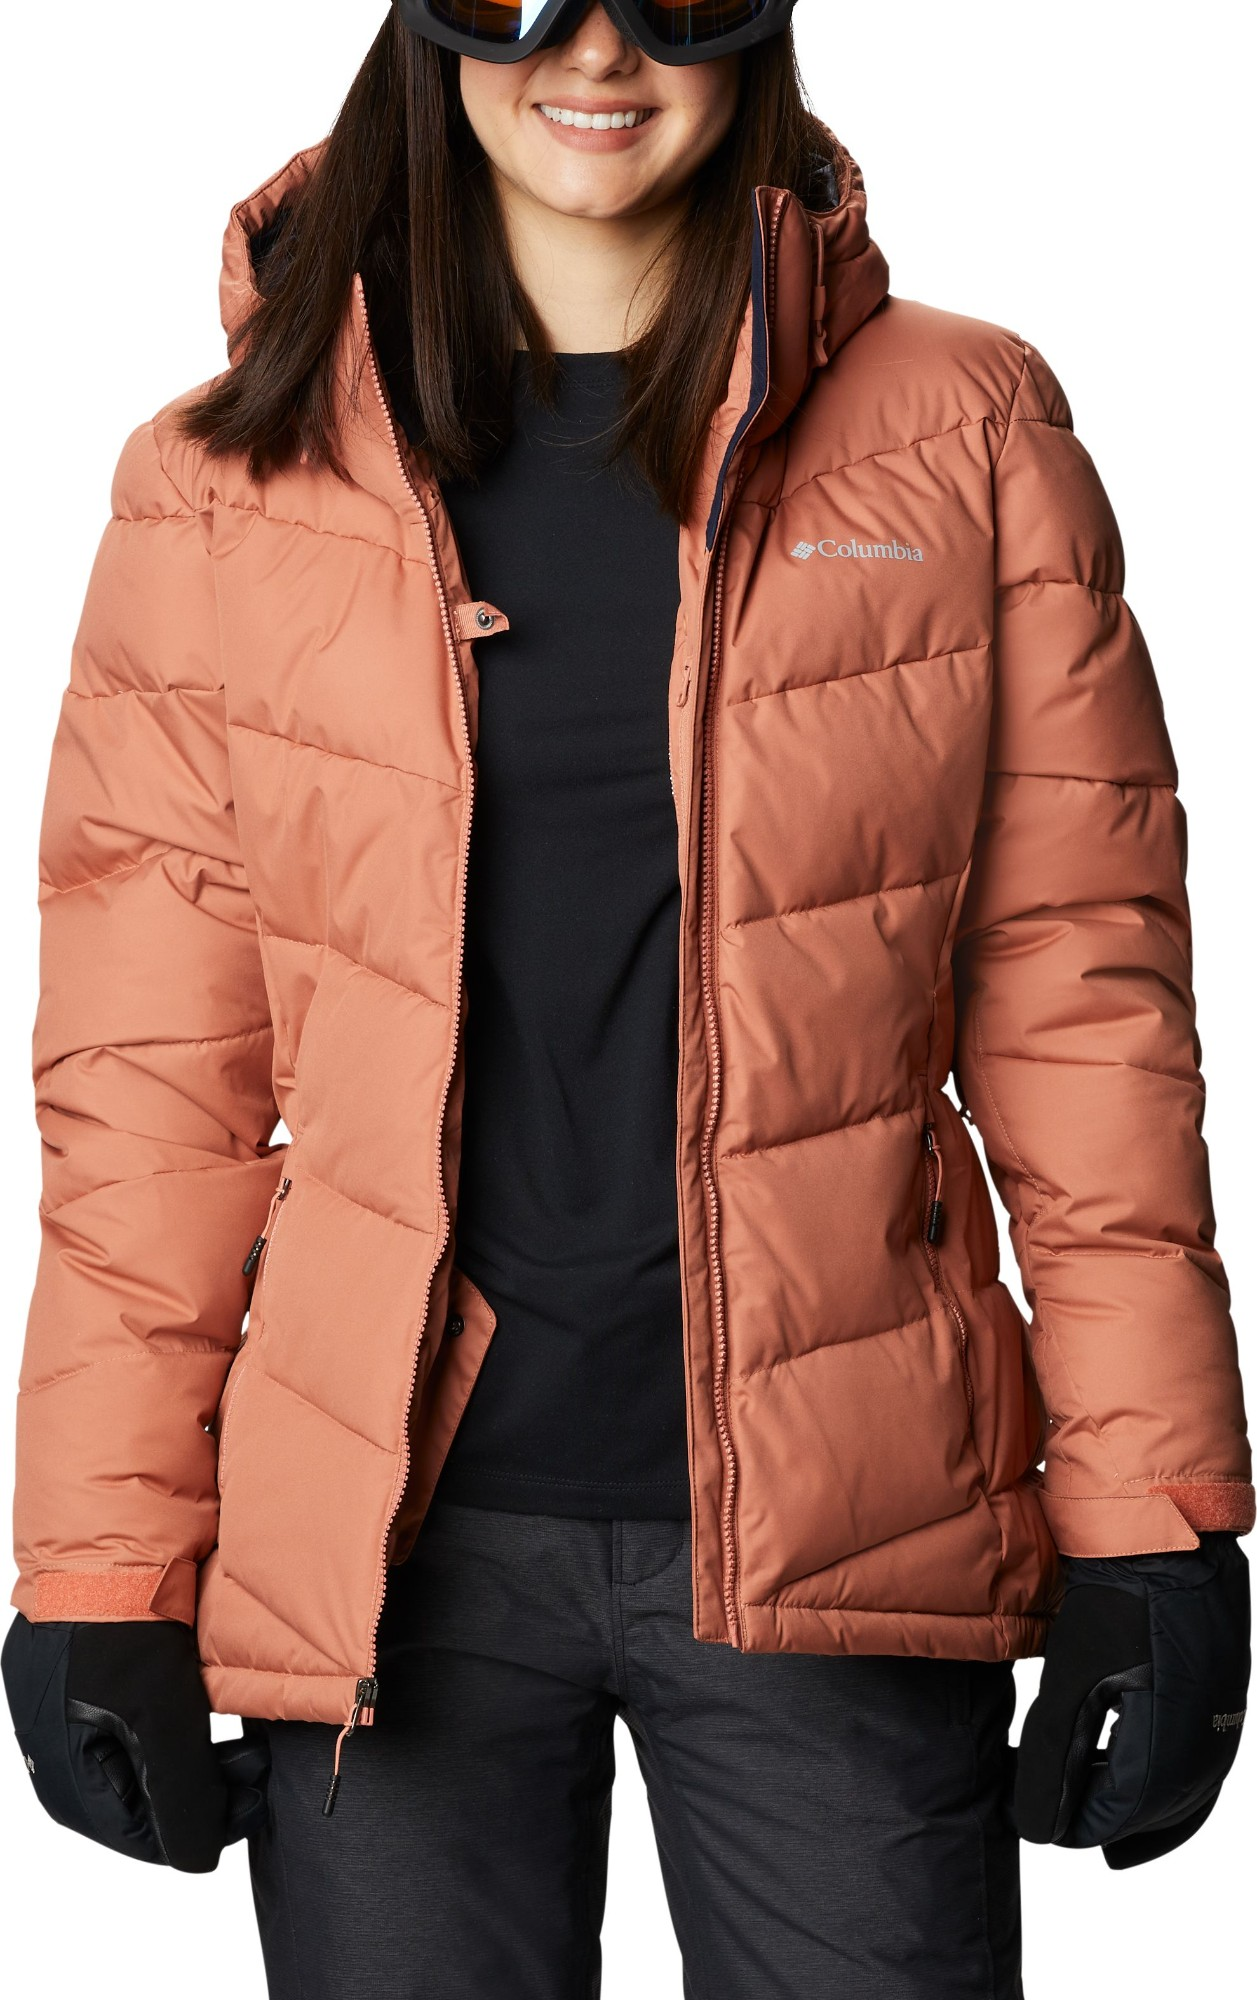 Columbia Abbott Peak Insulated Jacket Women's Nova Pink M